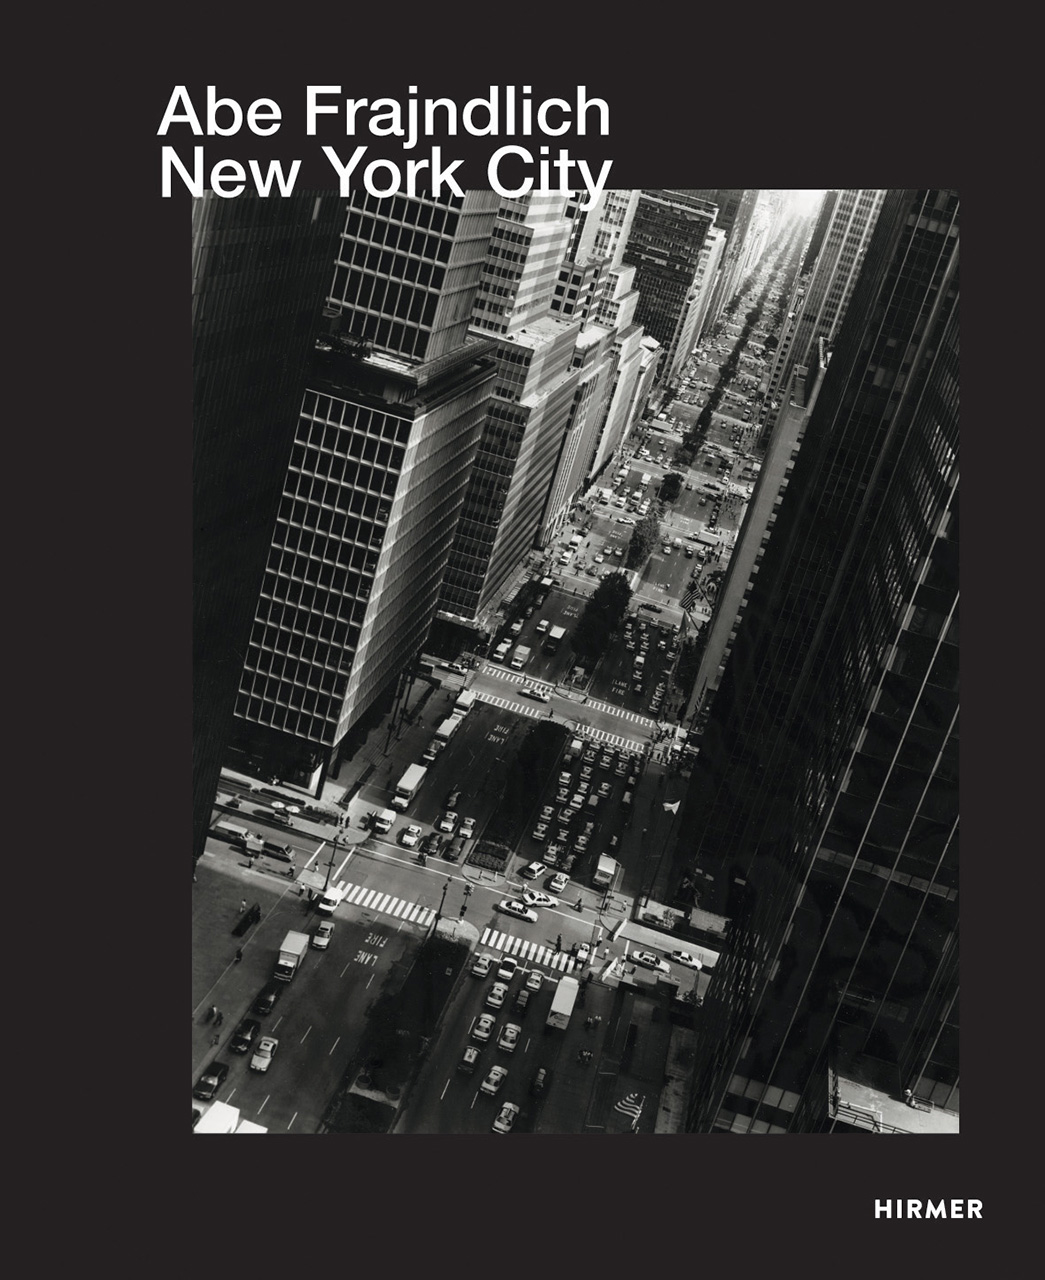 Abe Frajndlich: New York City